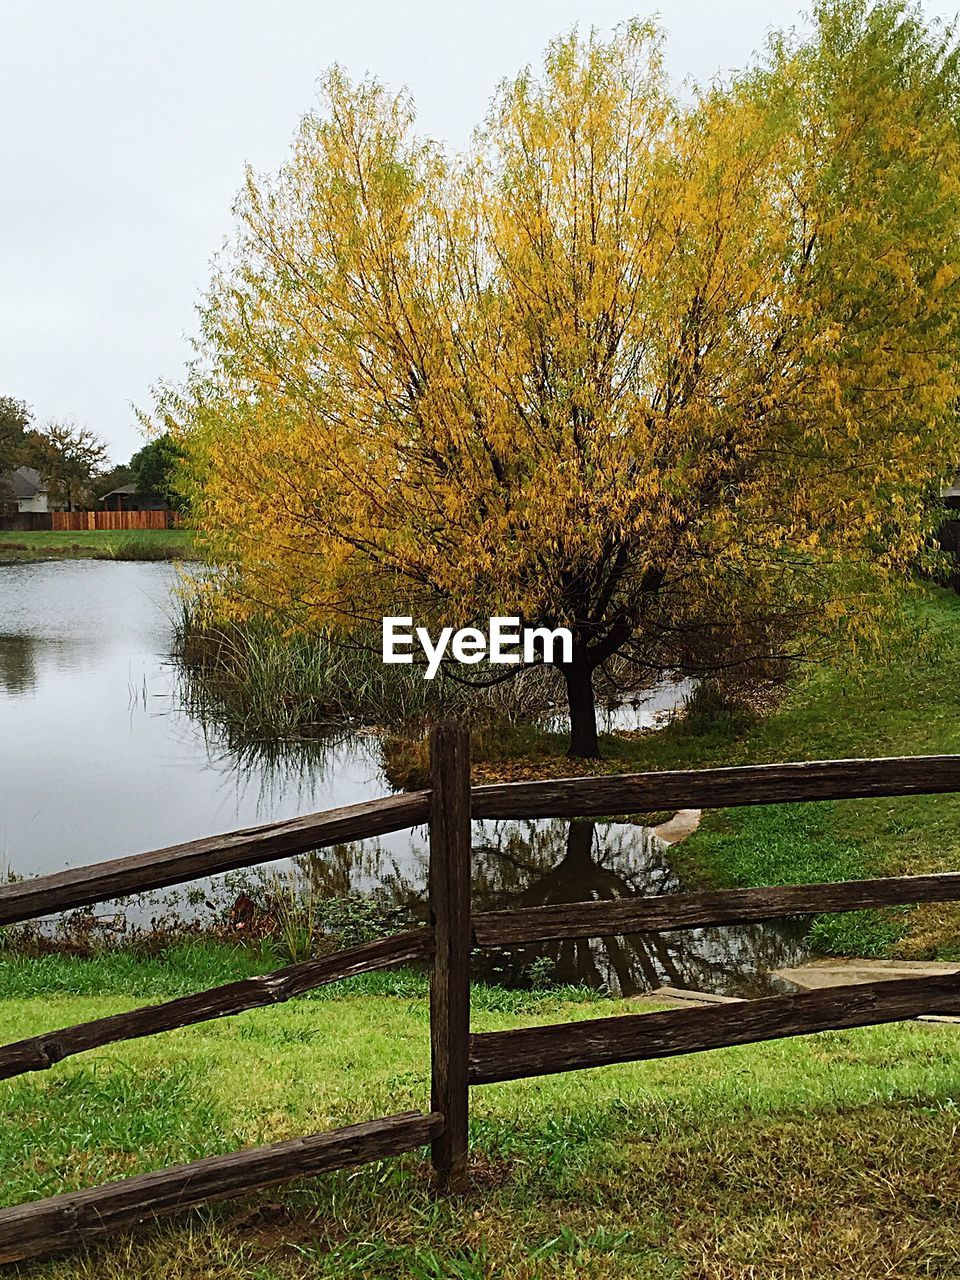 tree, nature, beauty in nature, water, autumn, lake, tranquility, scenics, tranquil scene, no people, outdoors, day, grass, leaf, sky